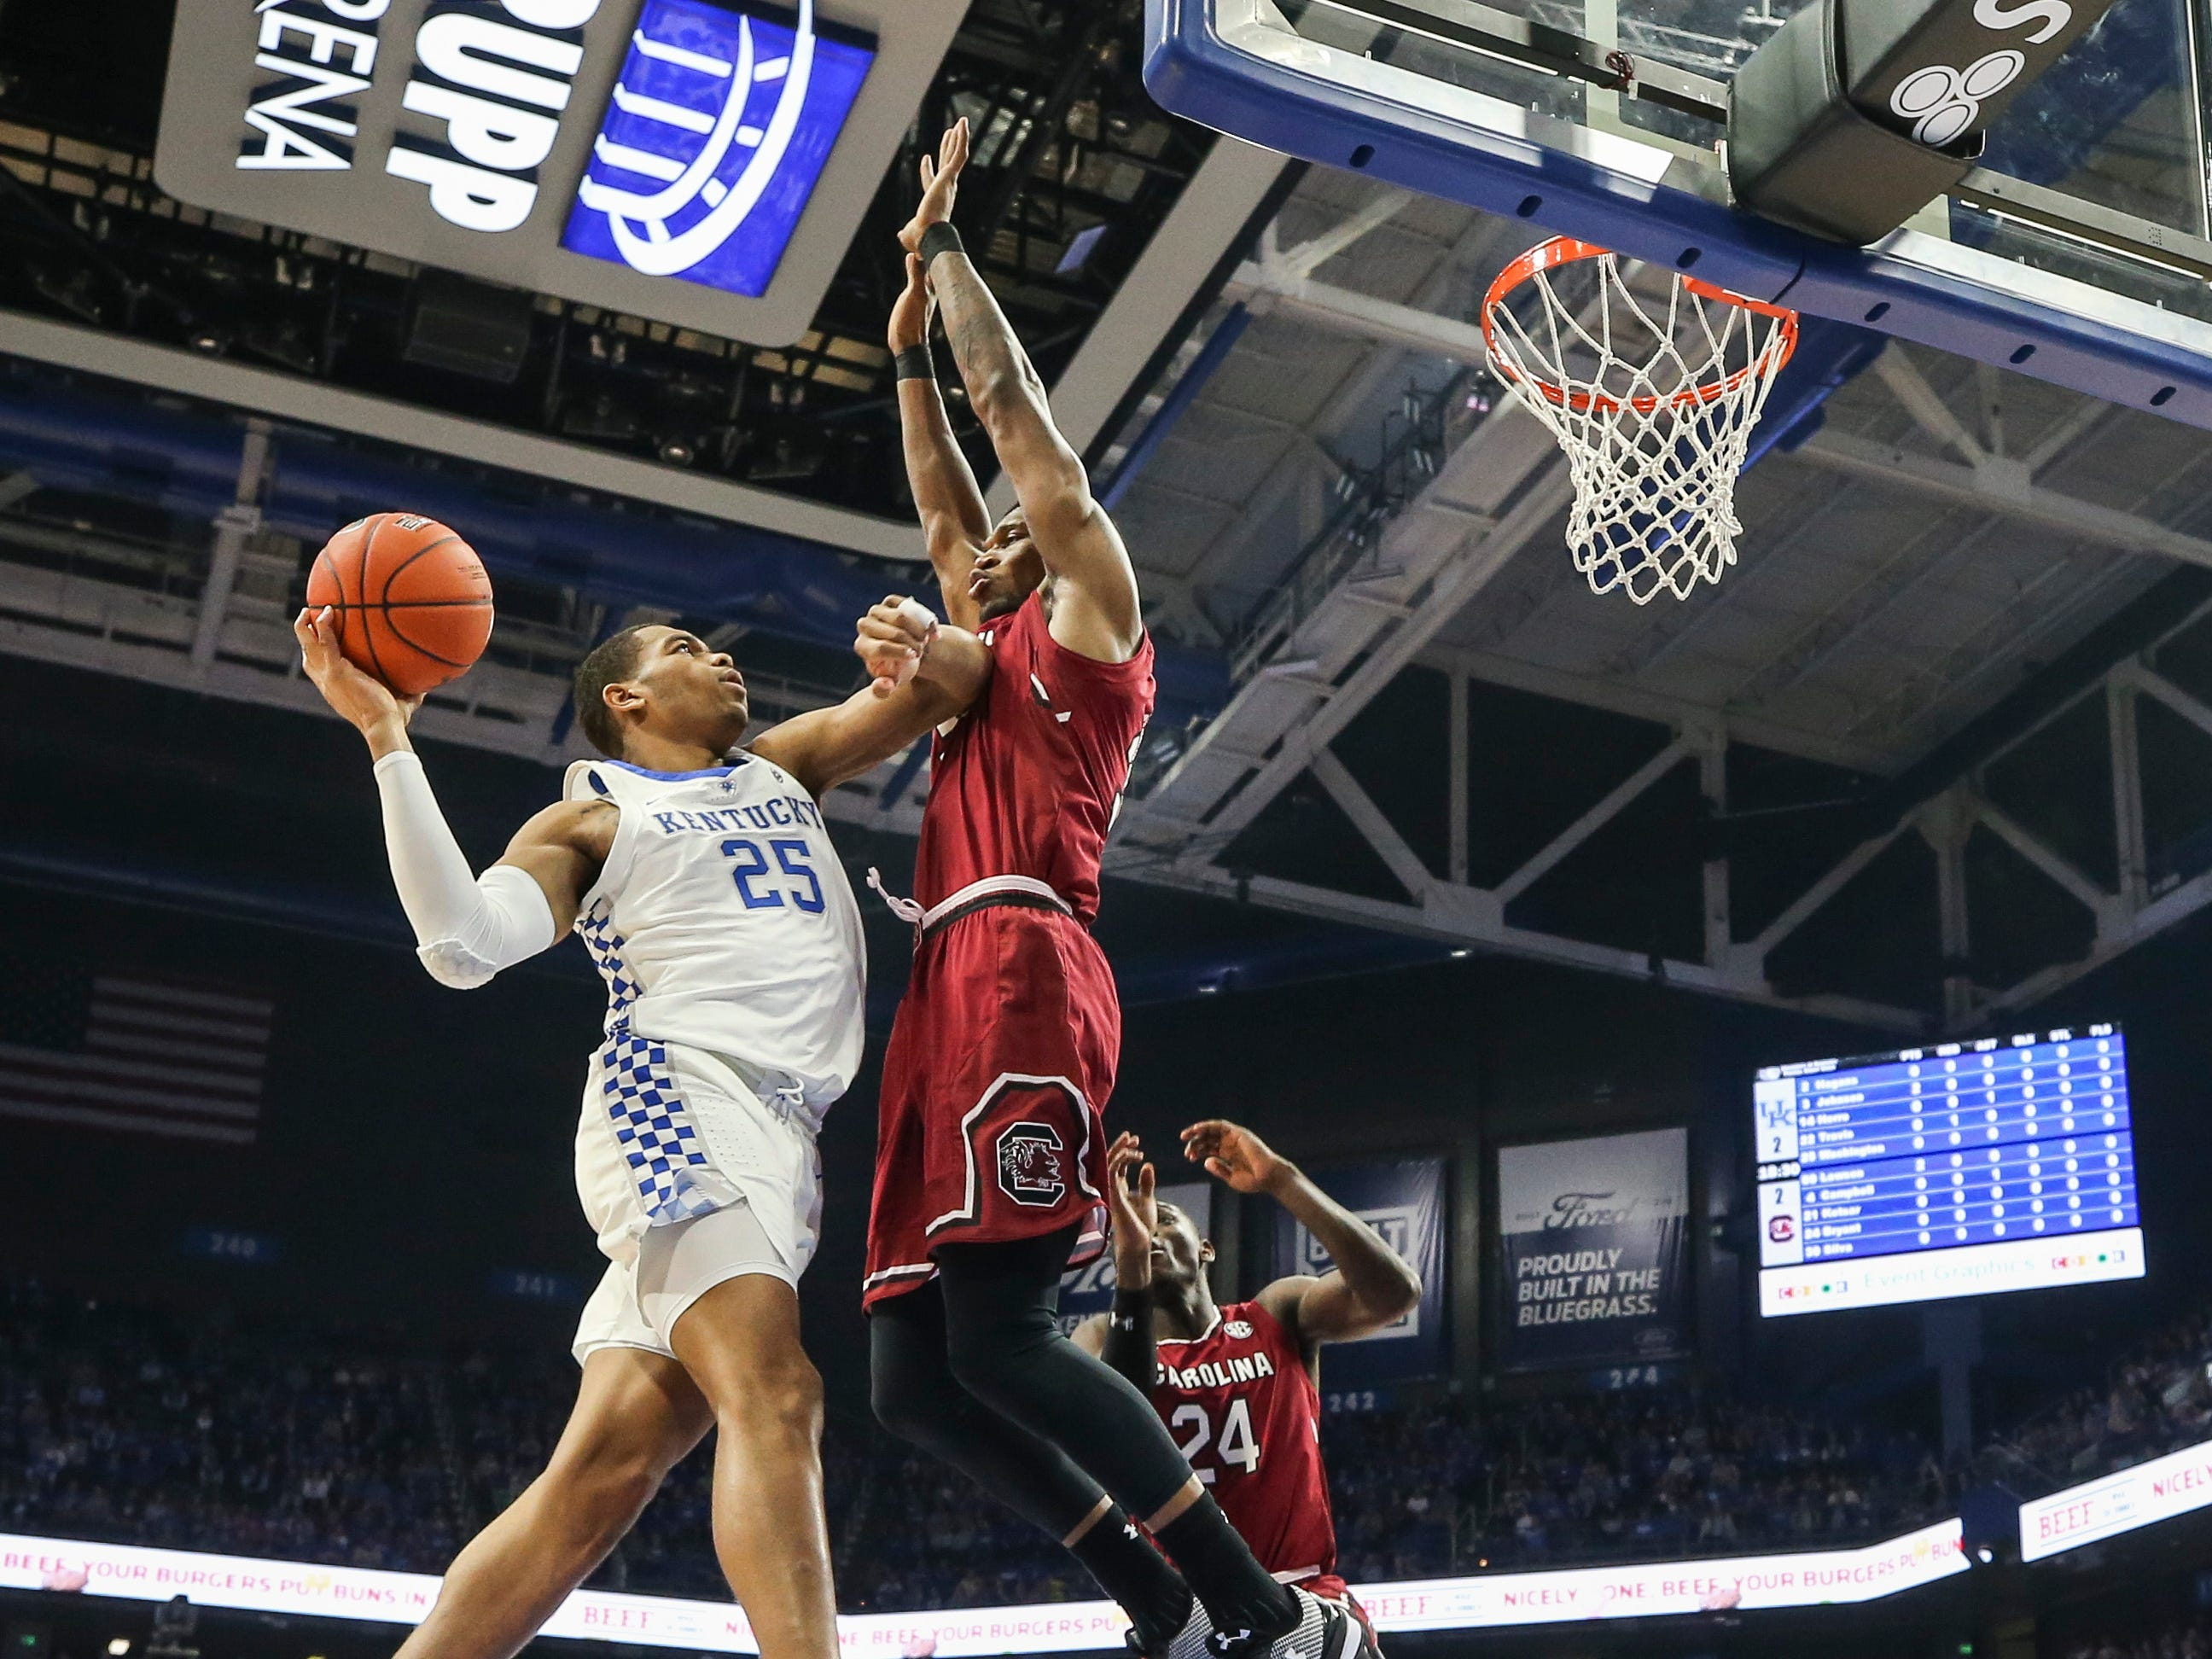 Kentucky's PJ Washington Jr scores two in the first half Tuesday night against South Carolina at Rupp Arena. Feb. 5, 2019